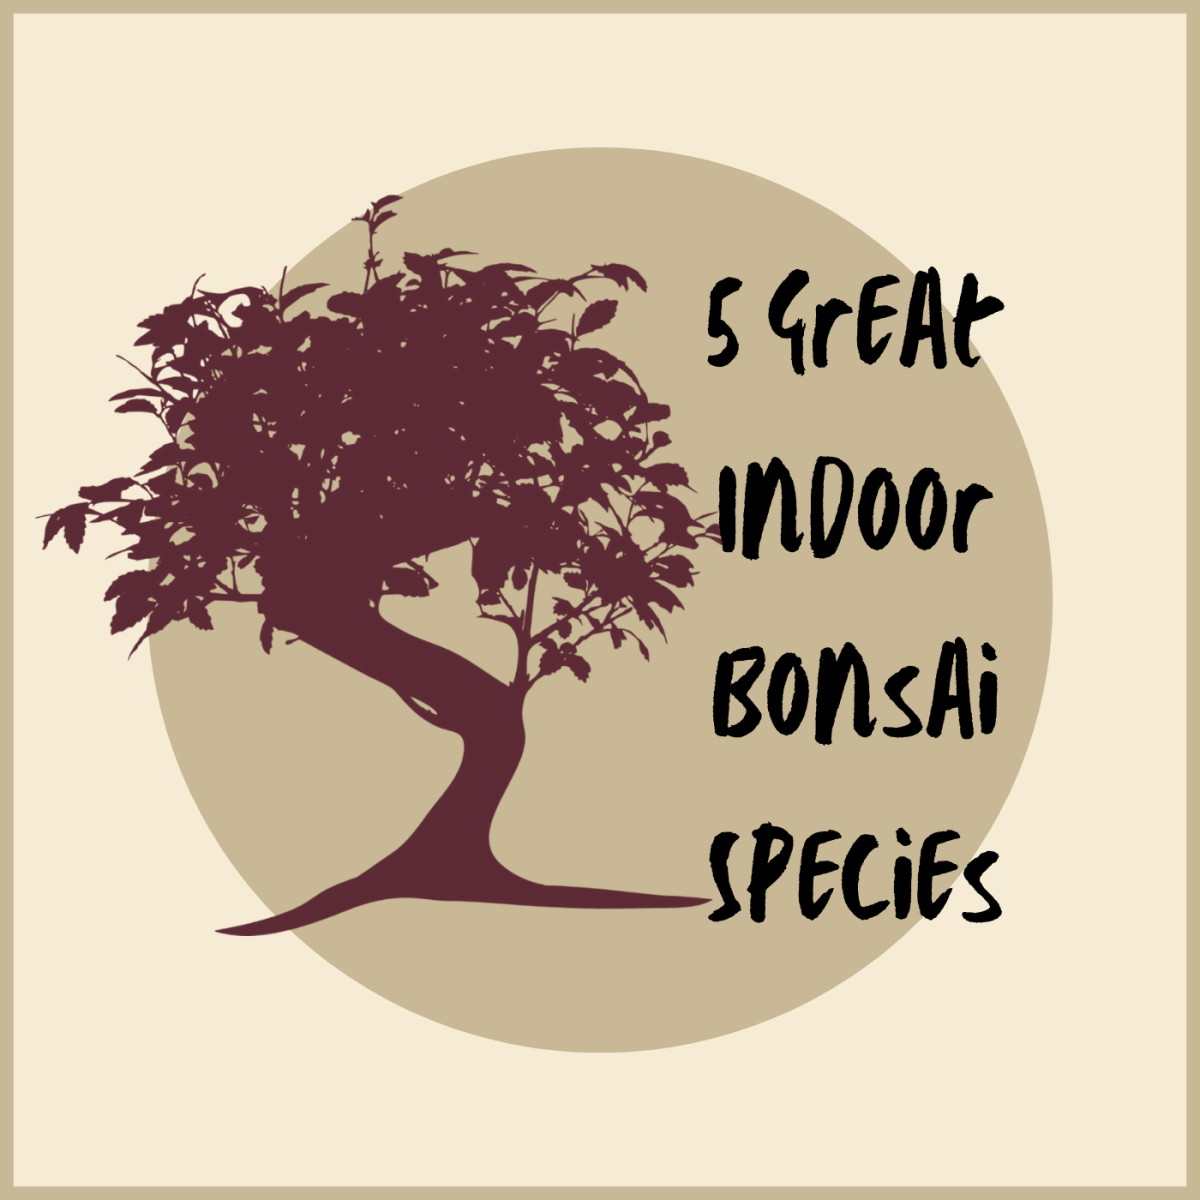 Check out which five bonsai species are great for indoors.